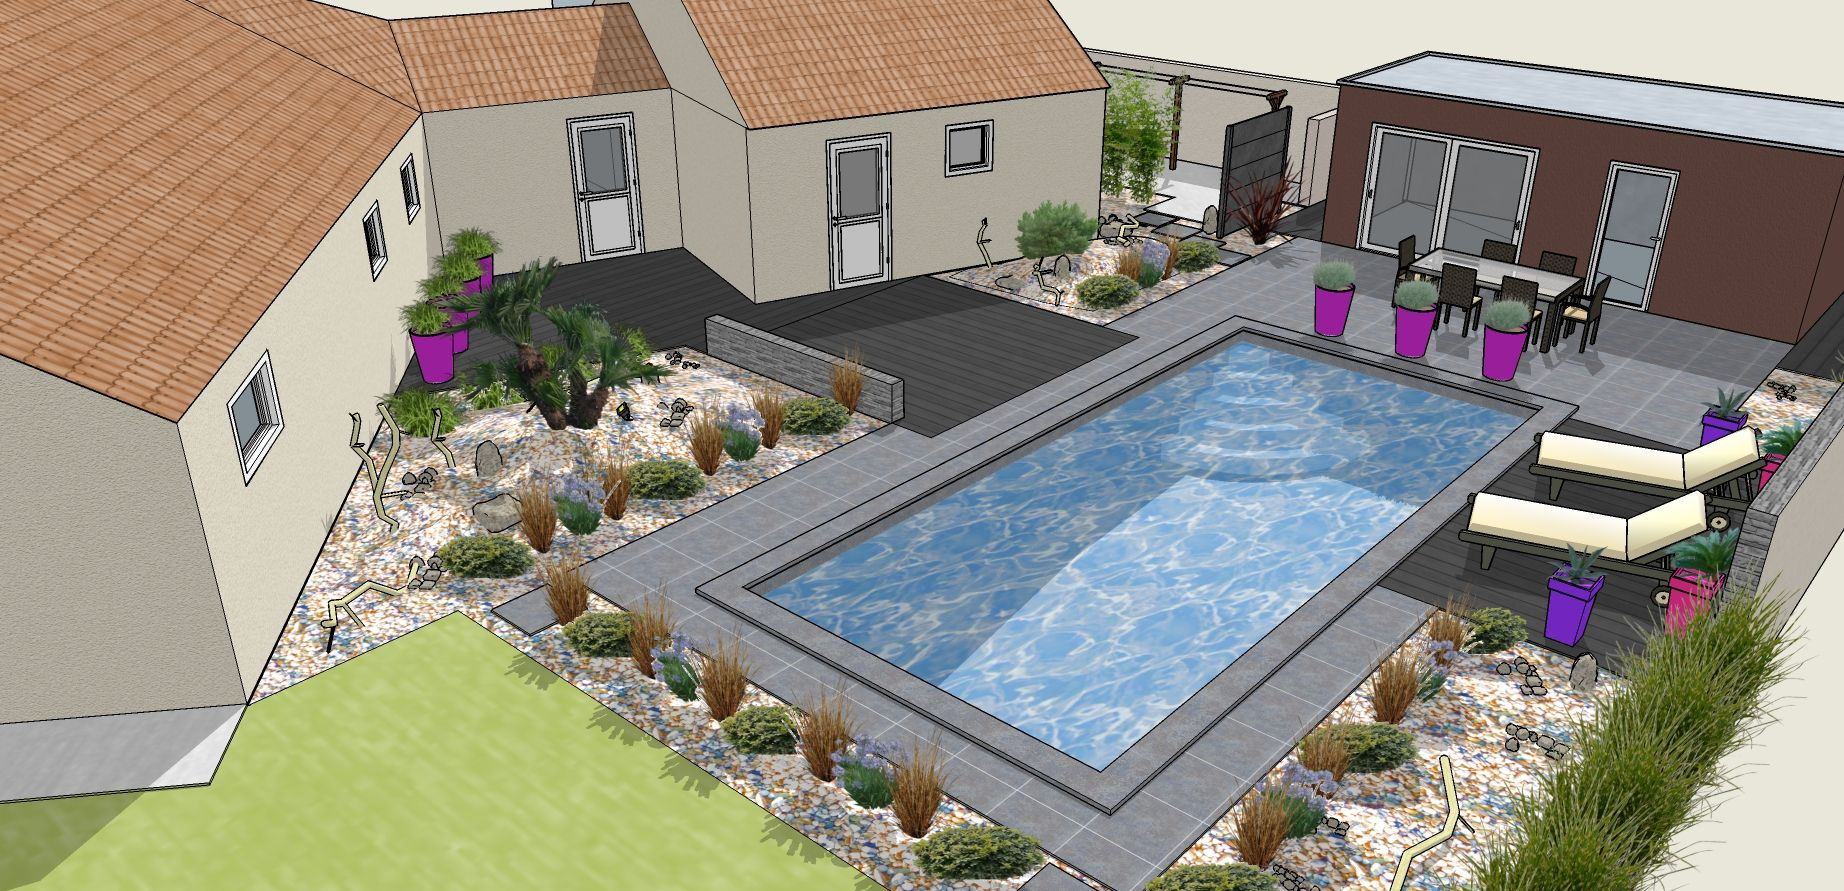 Am nagement paysager piscine creus e contemporain for Plan amenagement jardin